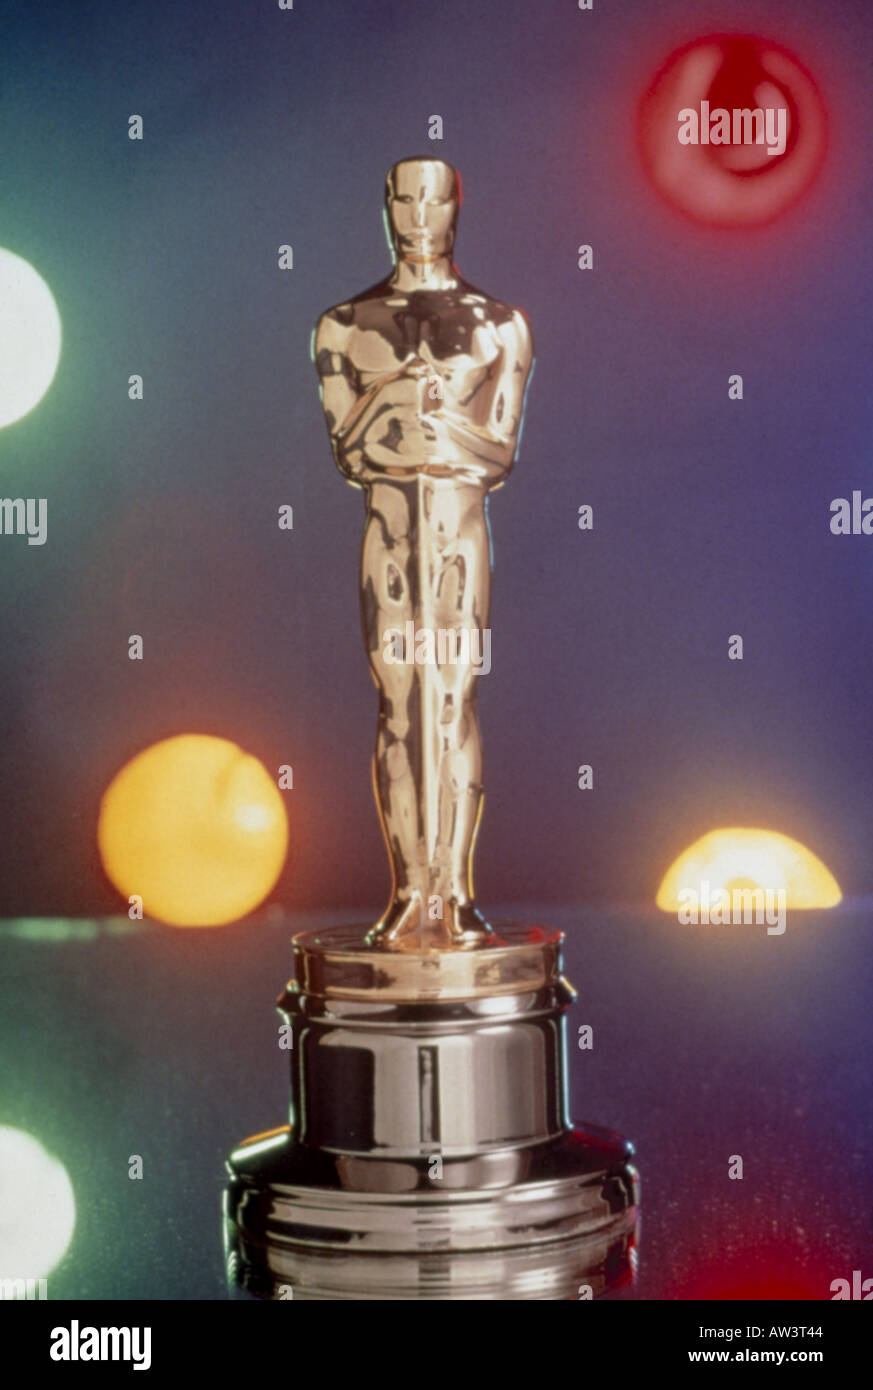 OSCAR statuette  famous film award by the American Academy of Motion Picture Arts and Sciences - see description below - Stock Image